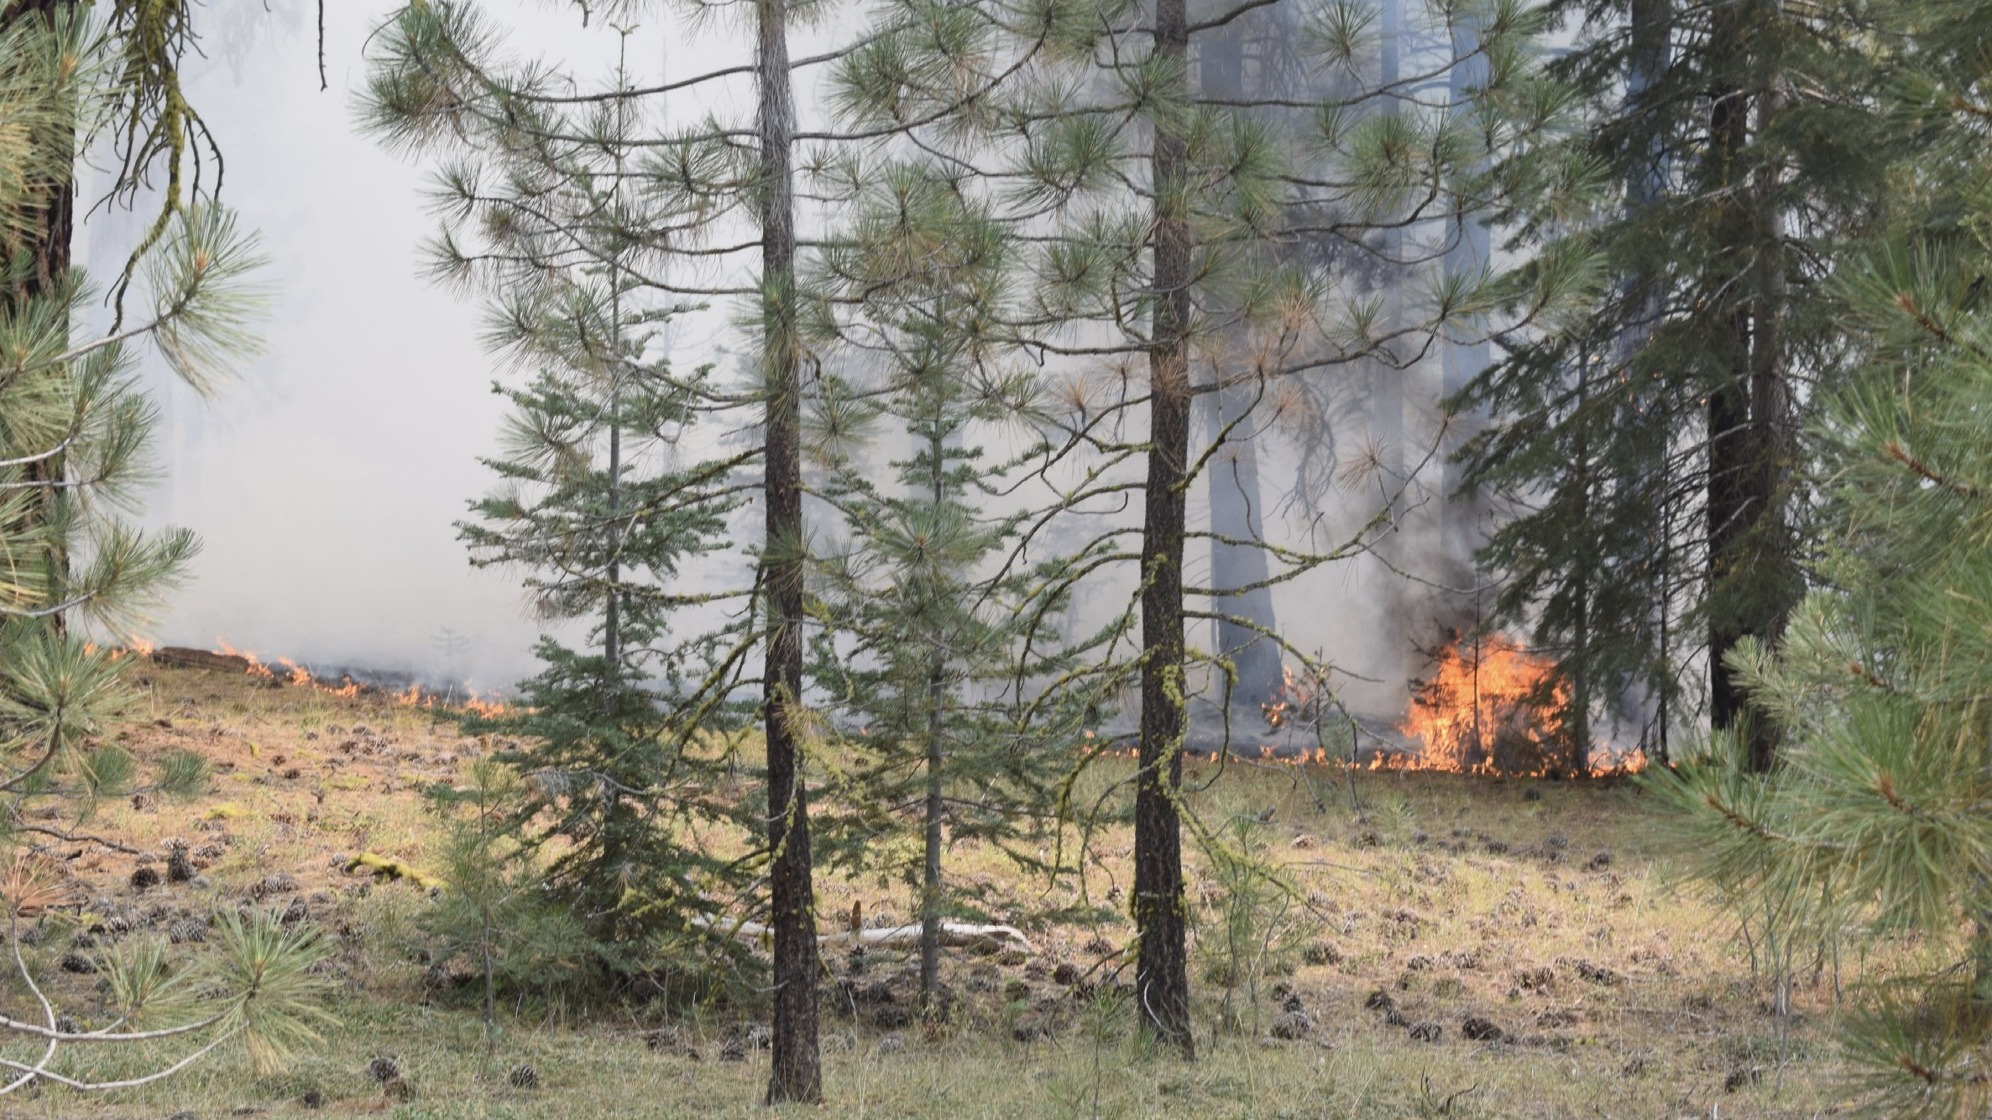 Investigators say they've linked the Ranch Fire, pictured here shortly after its discovery, and other blazes to Gary Maynard, a former college professor. He is charged with starting only the Ranch Fire.